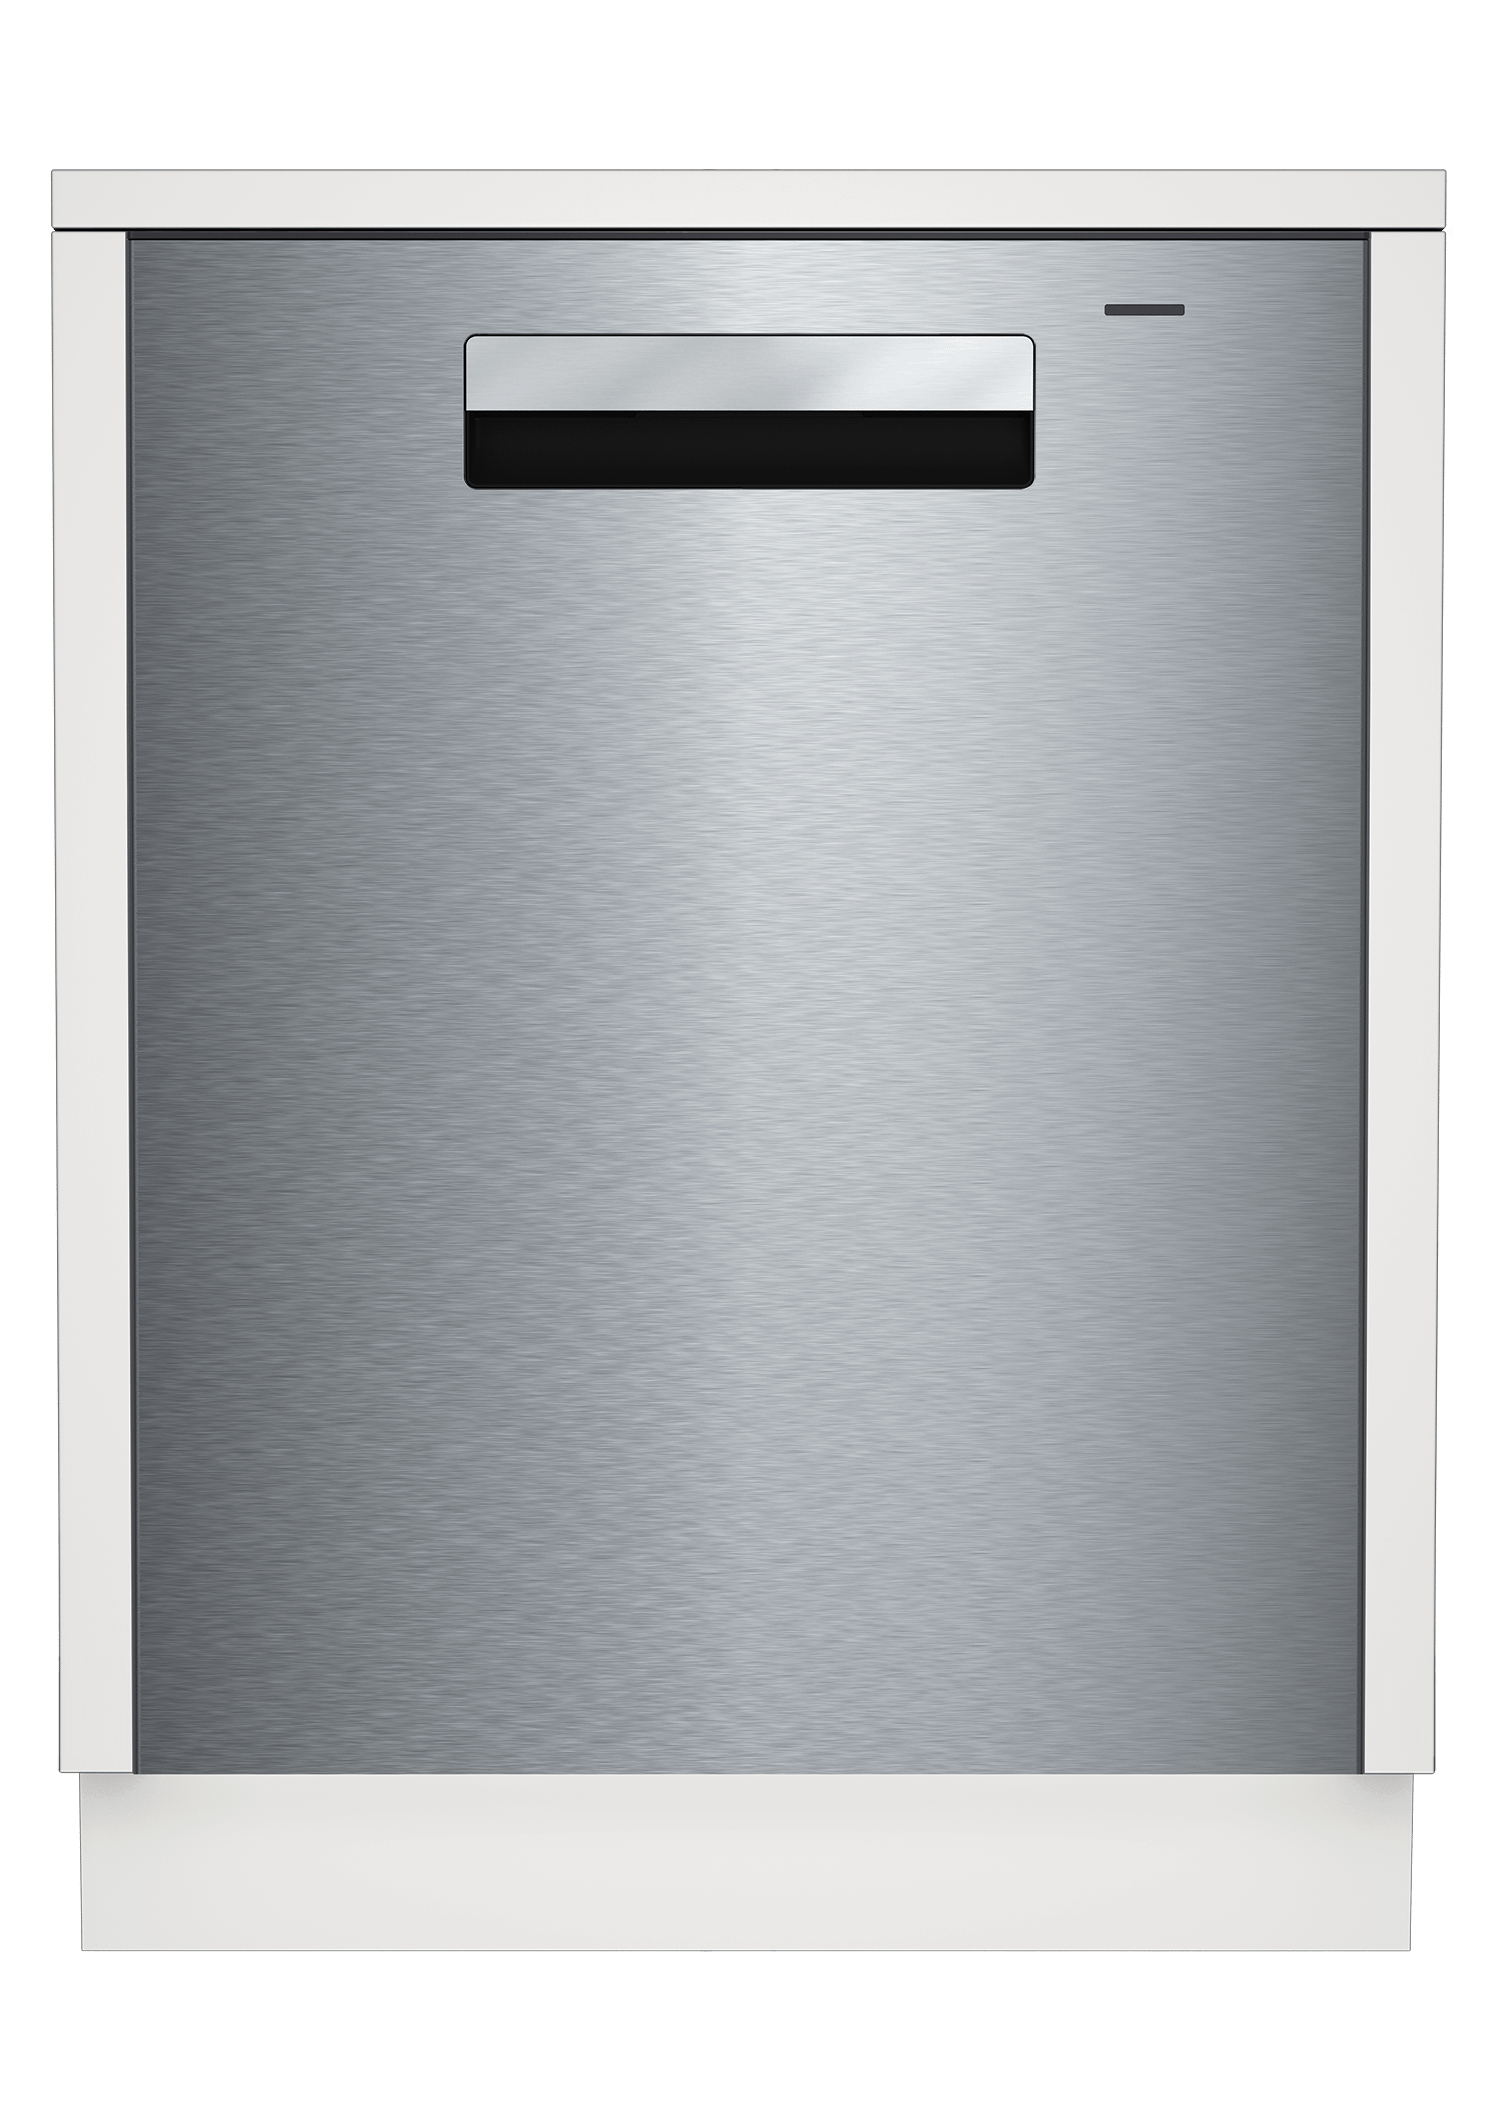 BekoTall Tub Wifi Connected Stainless Dishwasher, 16 Place Settings, 39 Dba, Top Control